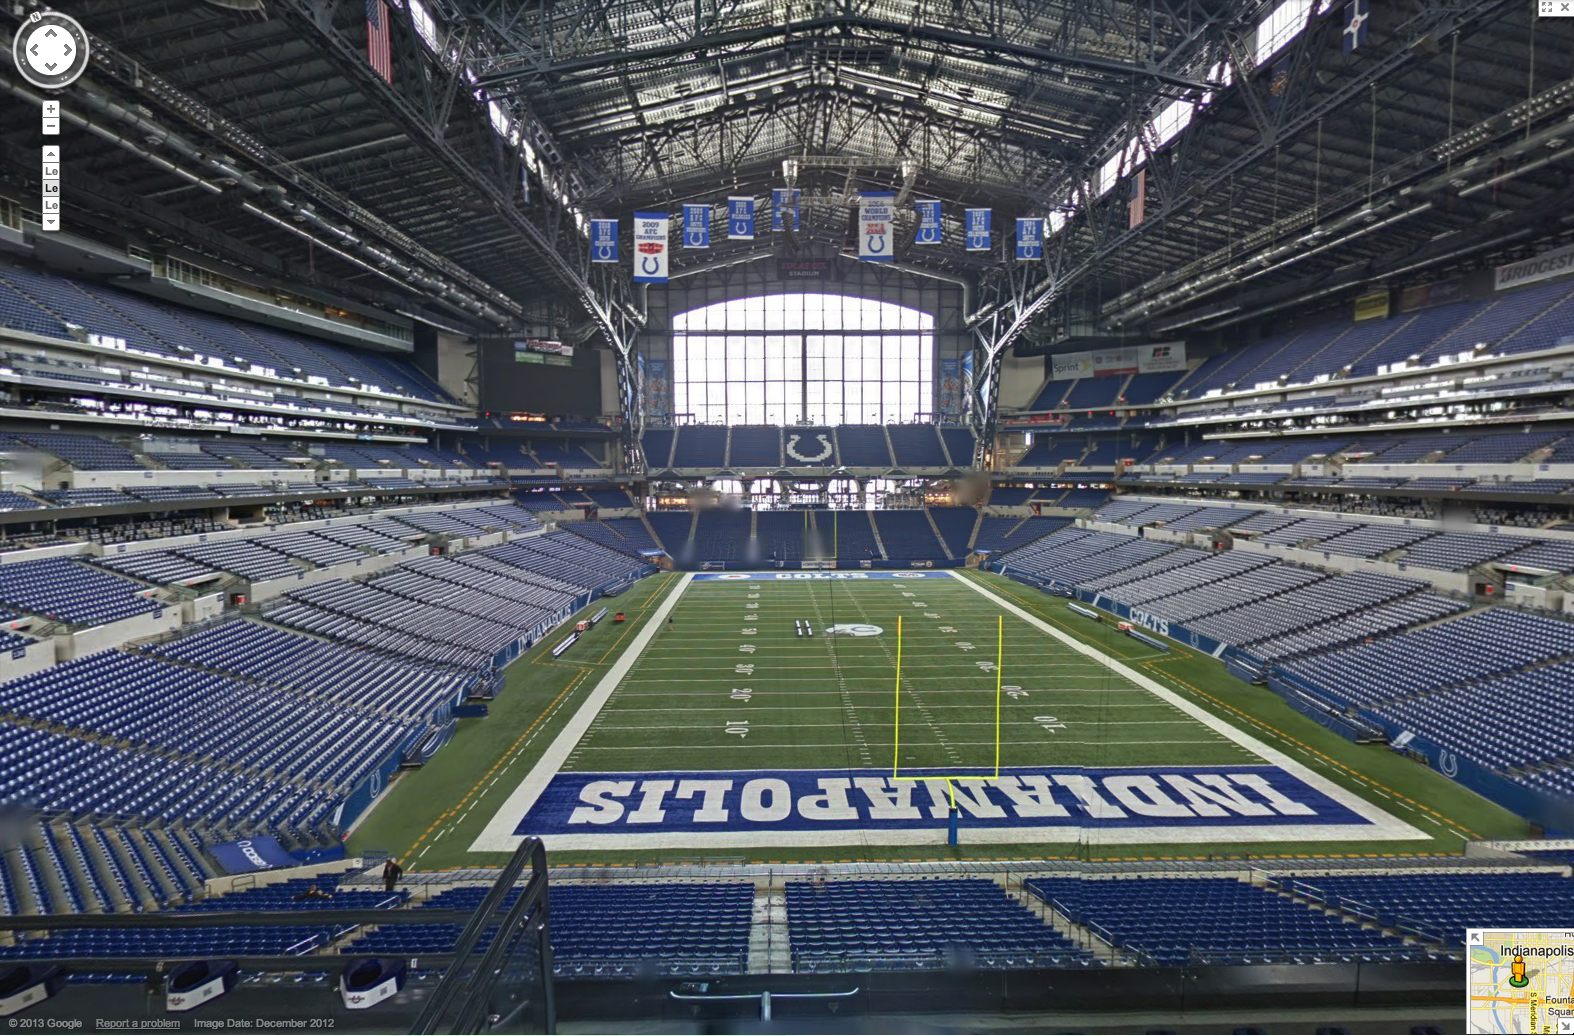 Google Maps Hosts 360-Degree Look at the Indianapolis Colts Stadium